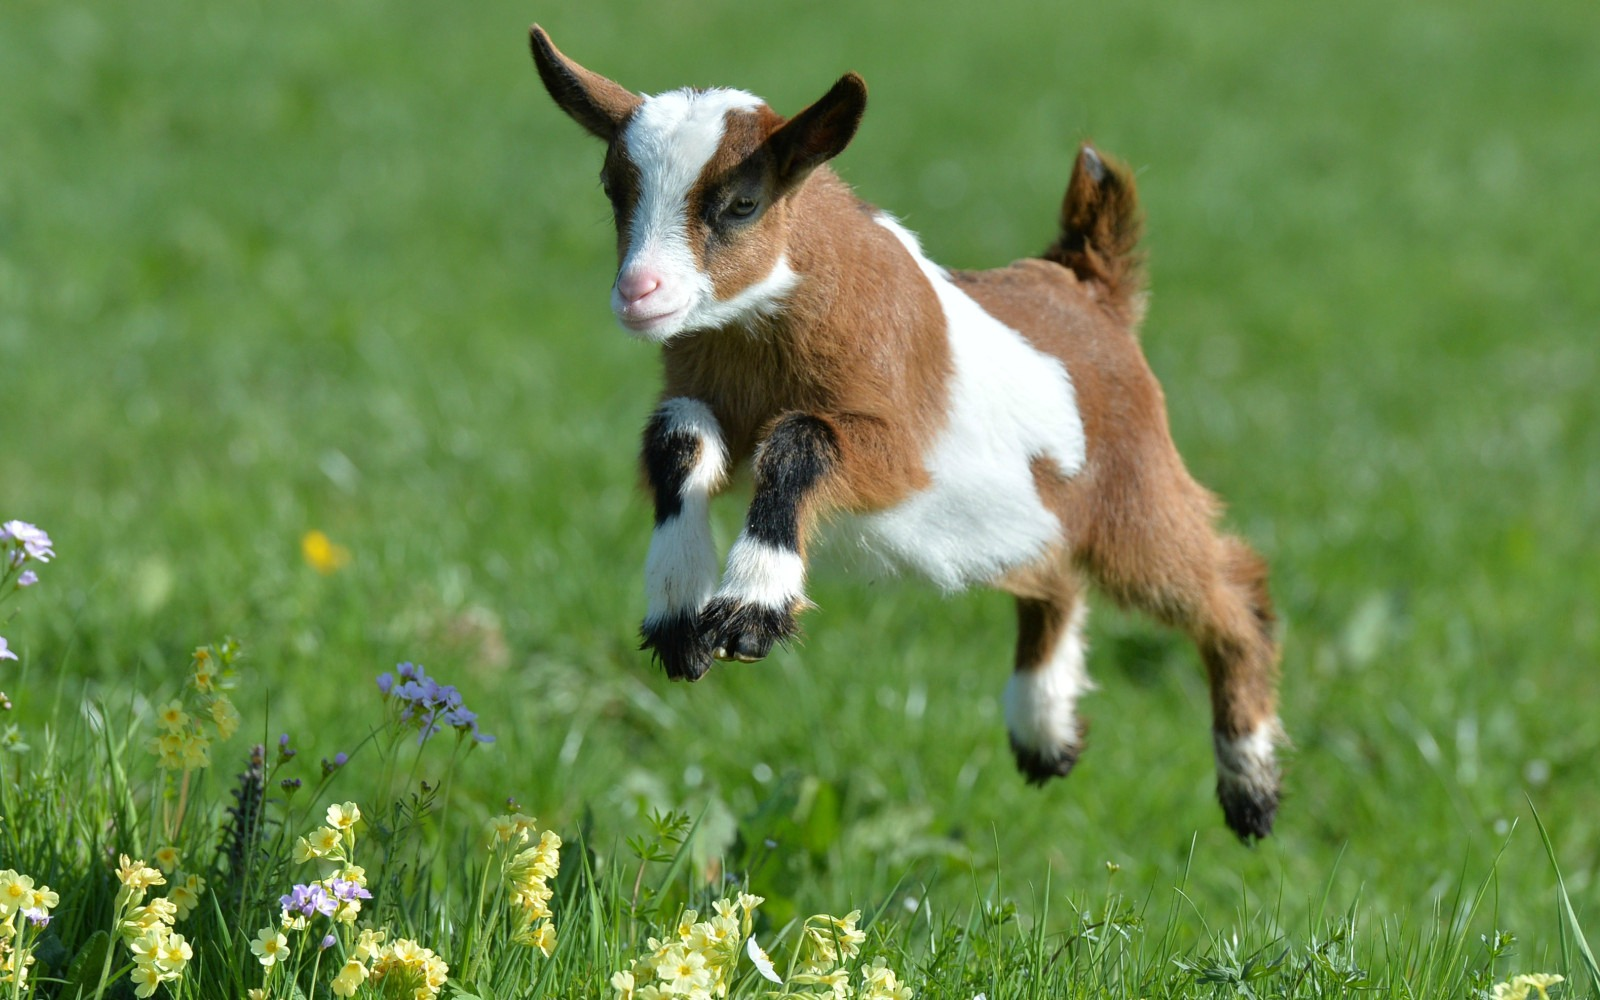 Goat Consumption on The Rise in The United States. Here's What the Goats Have to say About it